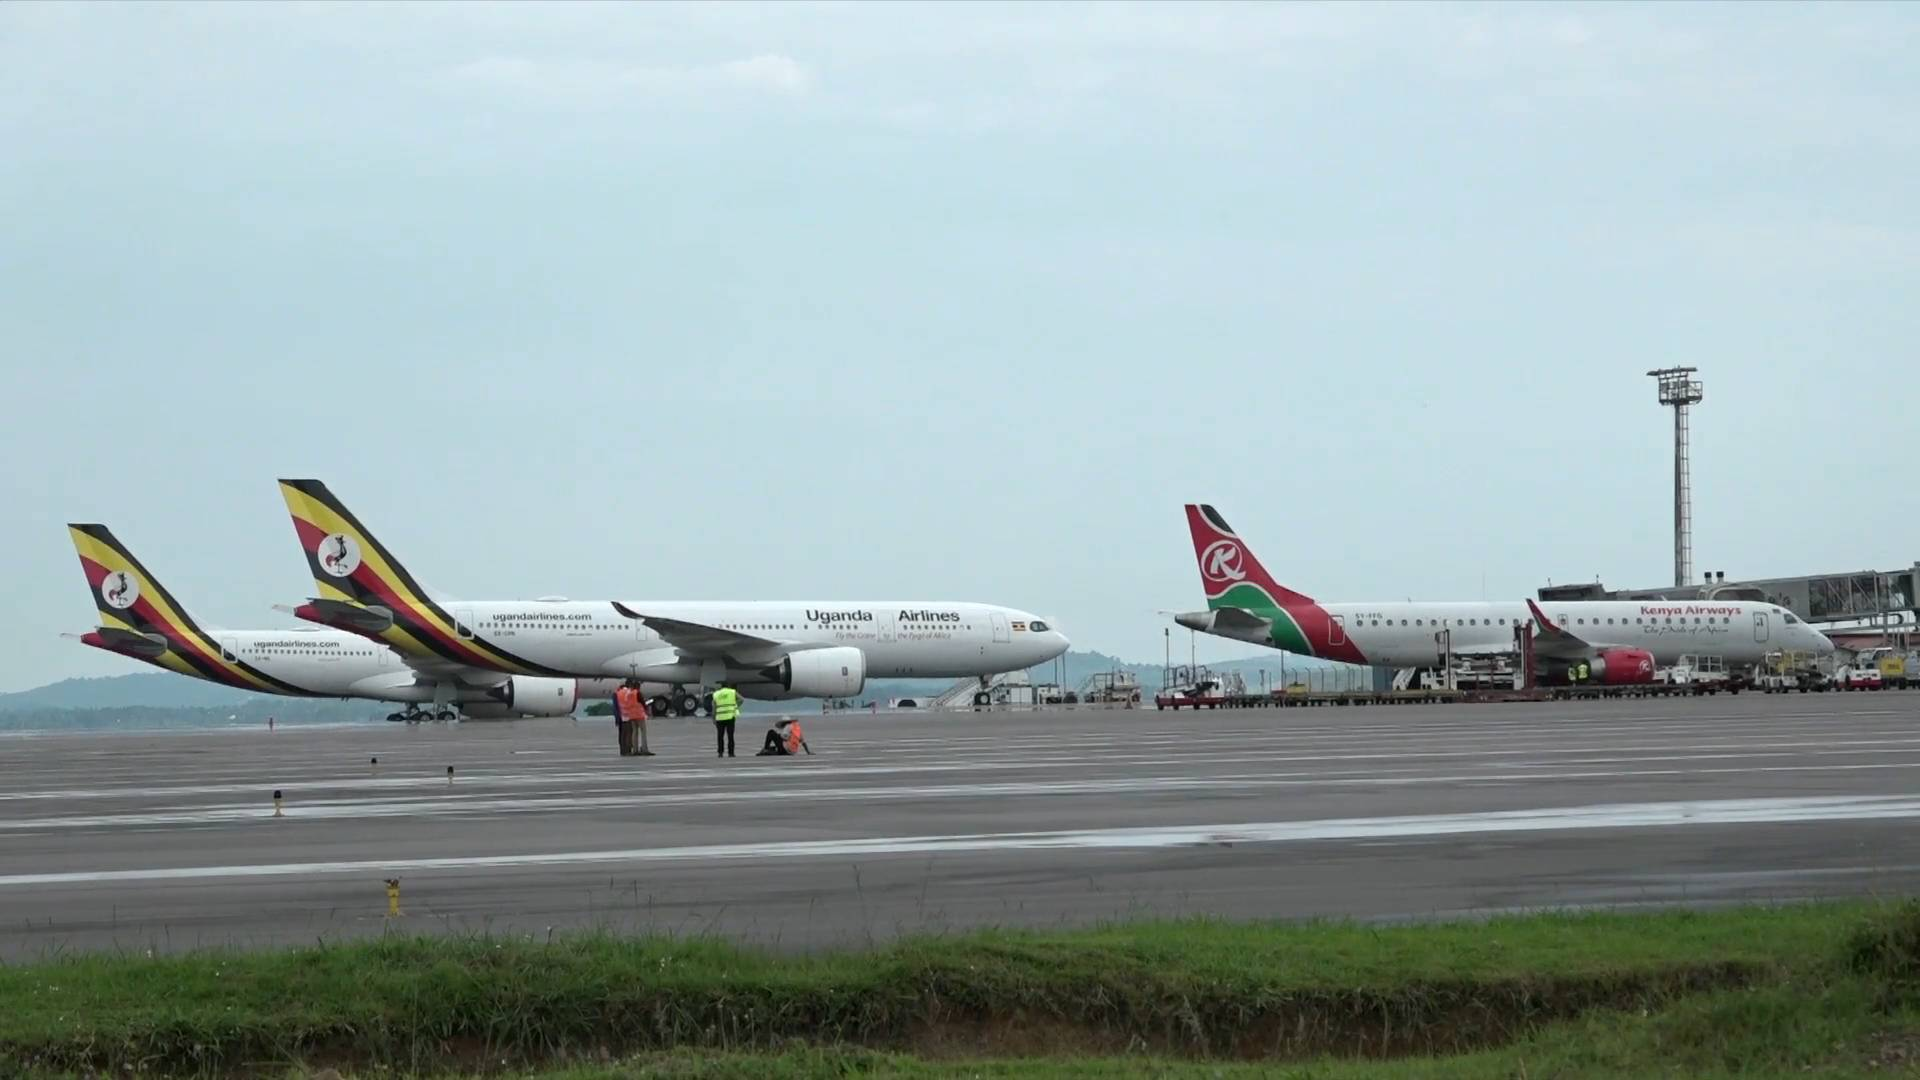 GLOBALink   China revitalizes Uganda's aging airport to carry more int'l traffic